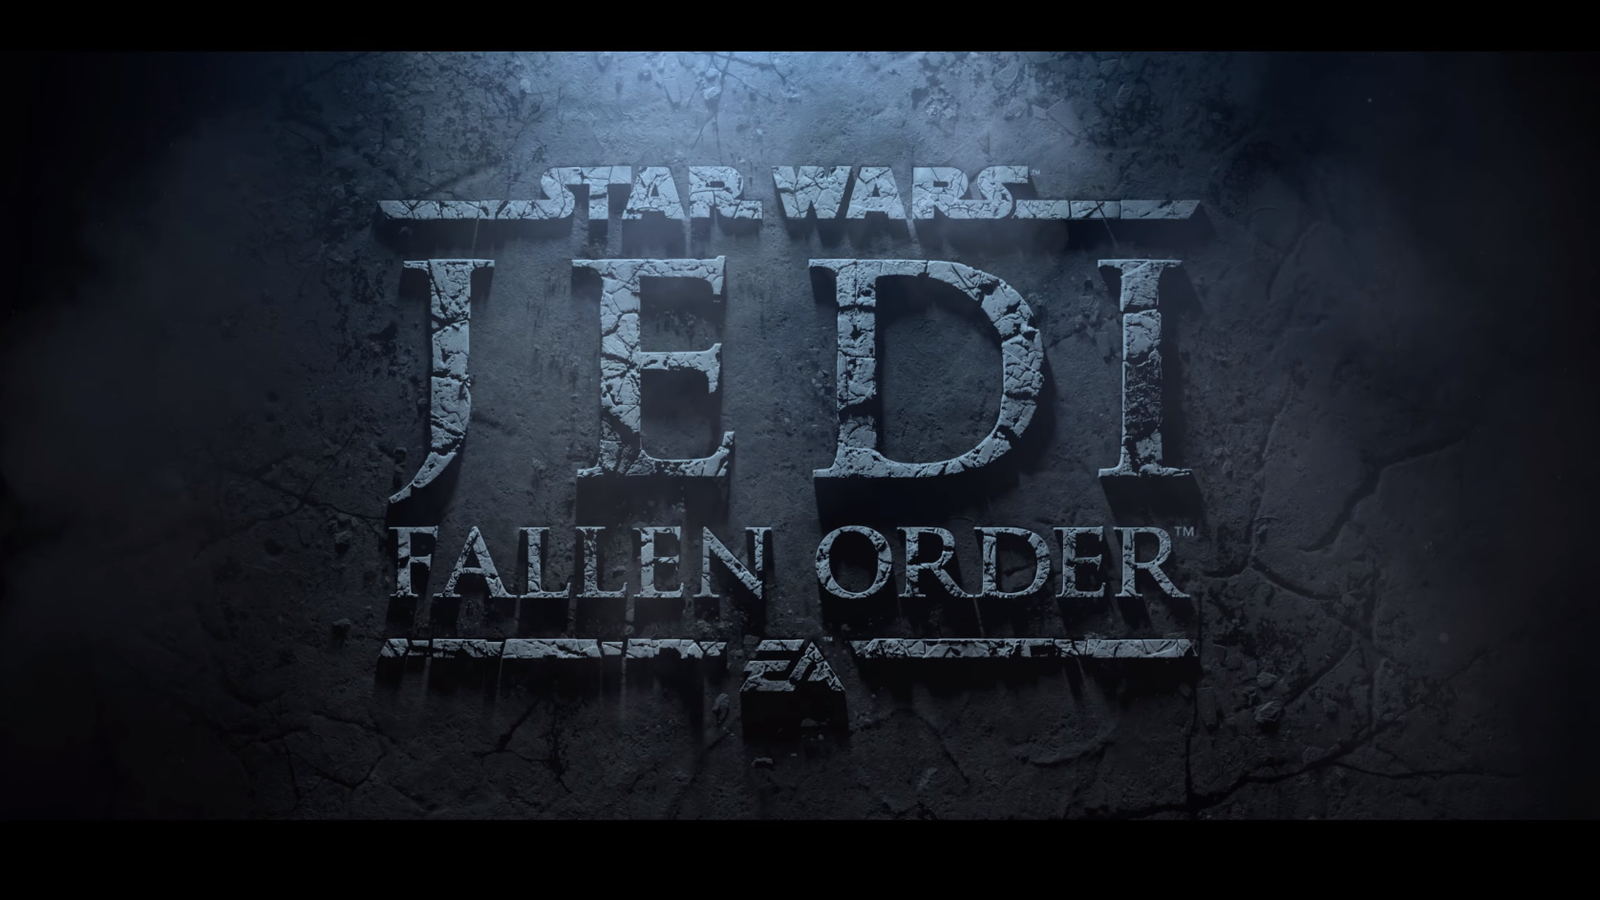 Our First Look At Star Wars Jedi: Fallen Order, A Single-Player Game Starring A Jedi Survivor